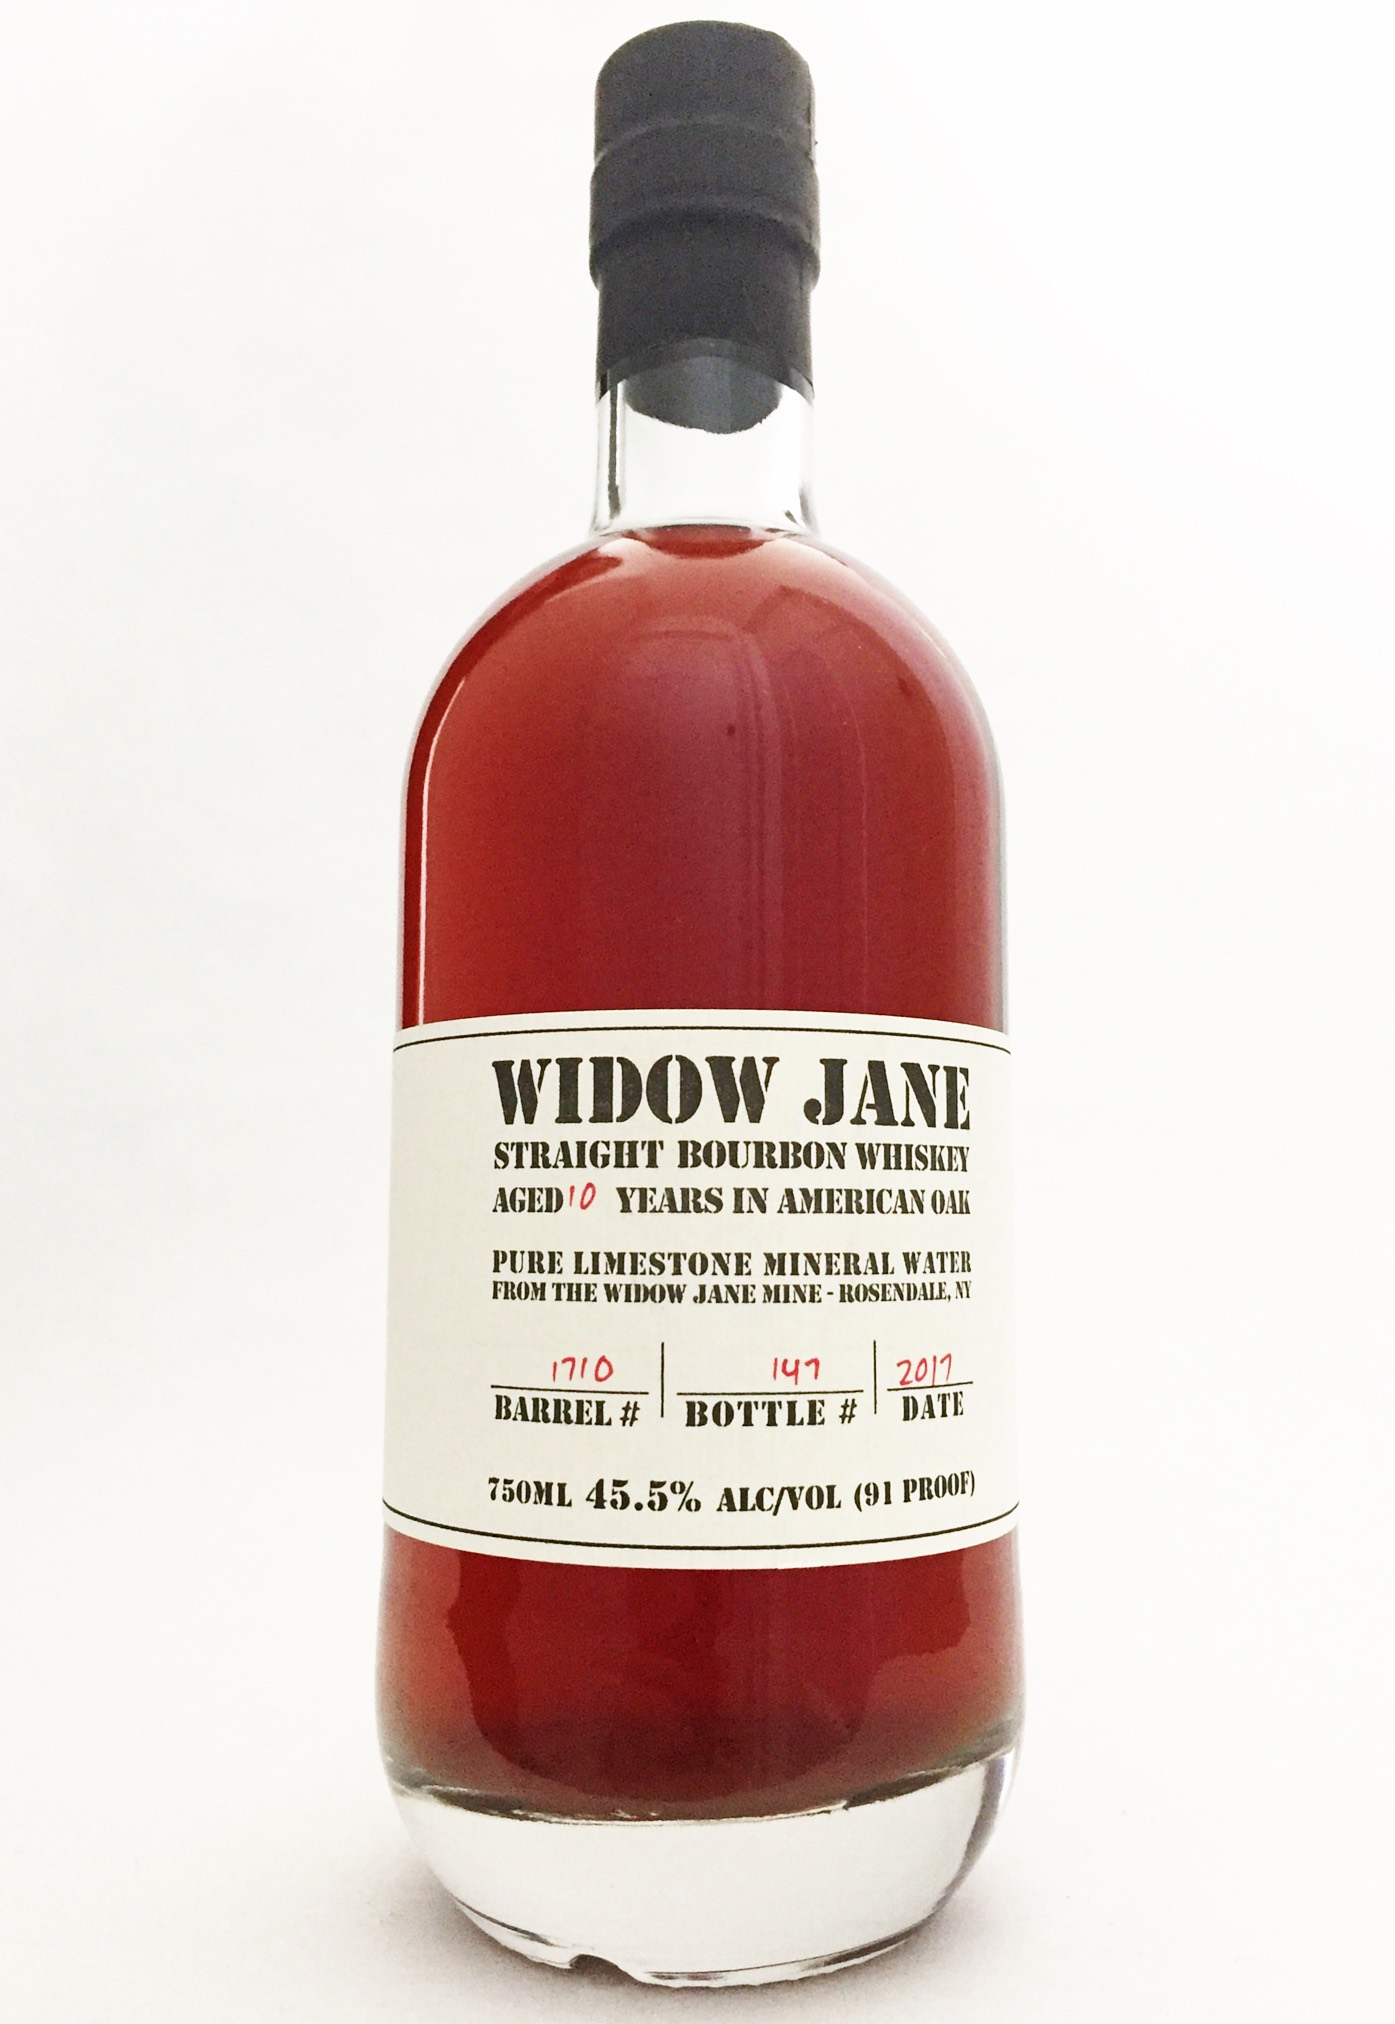 Widow Jane Full Bottle